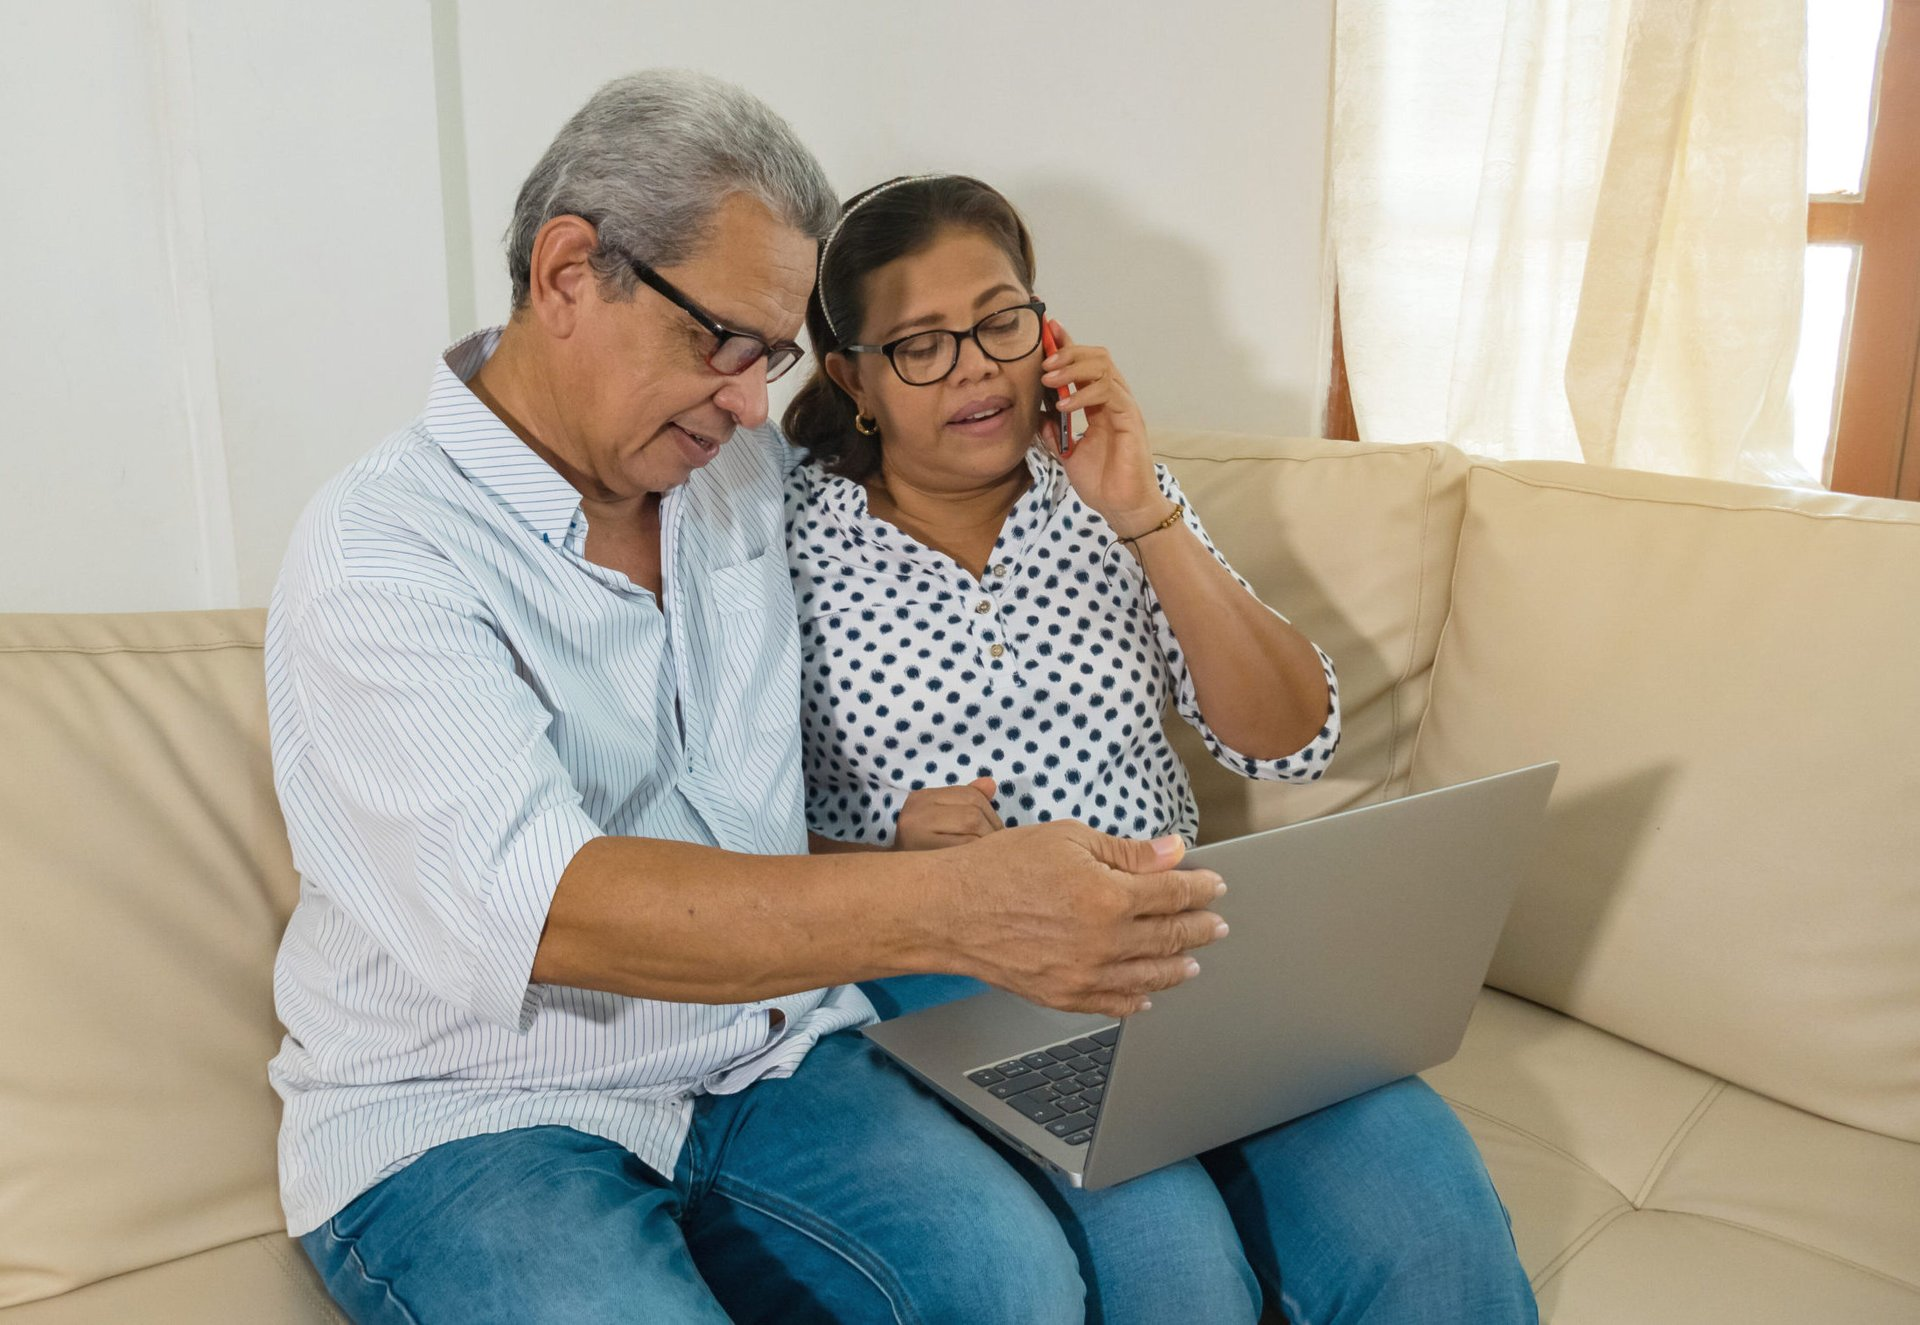 Older couple surfing the internet on a laptop